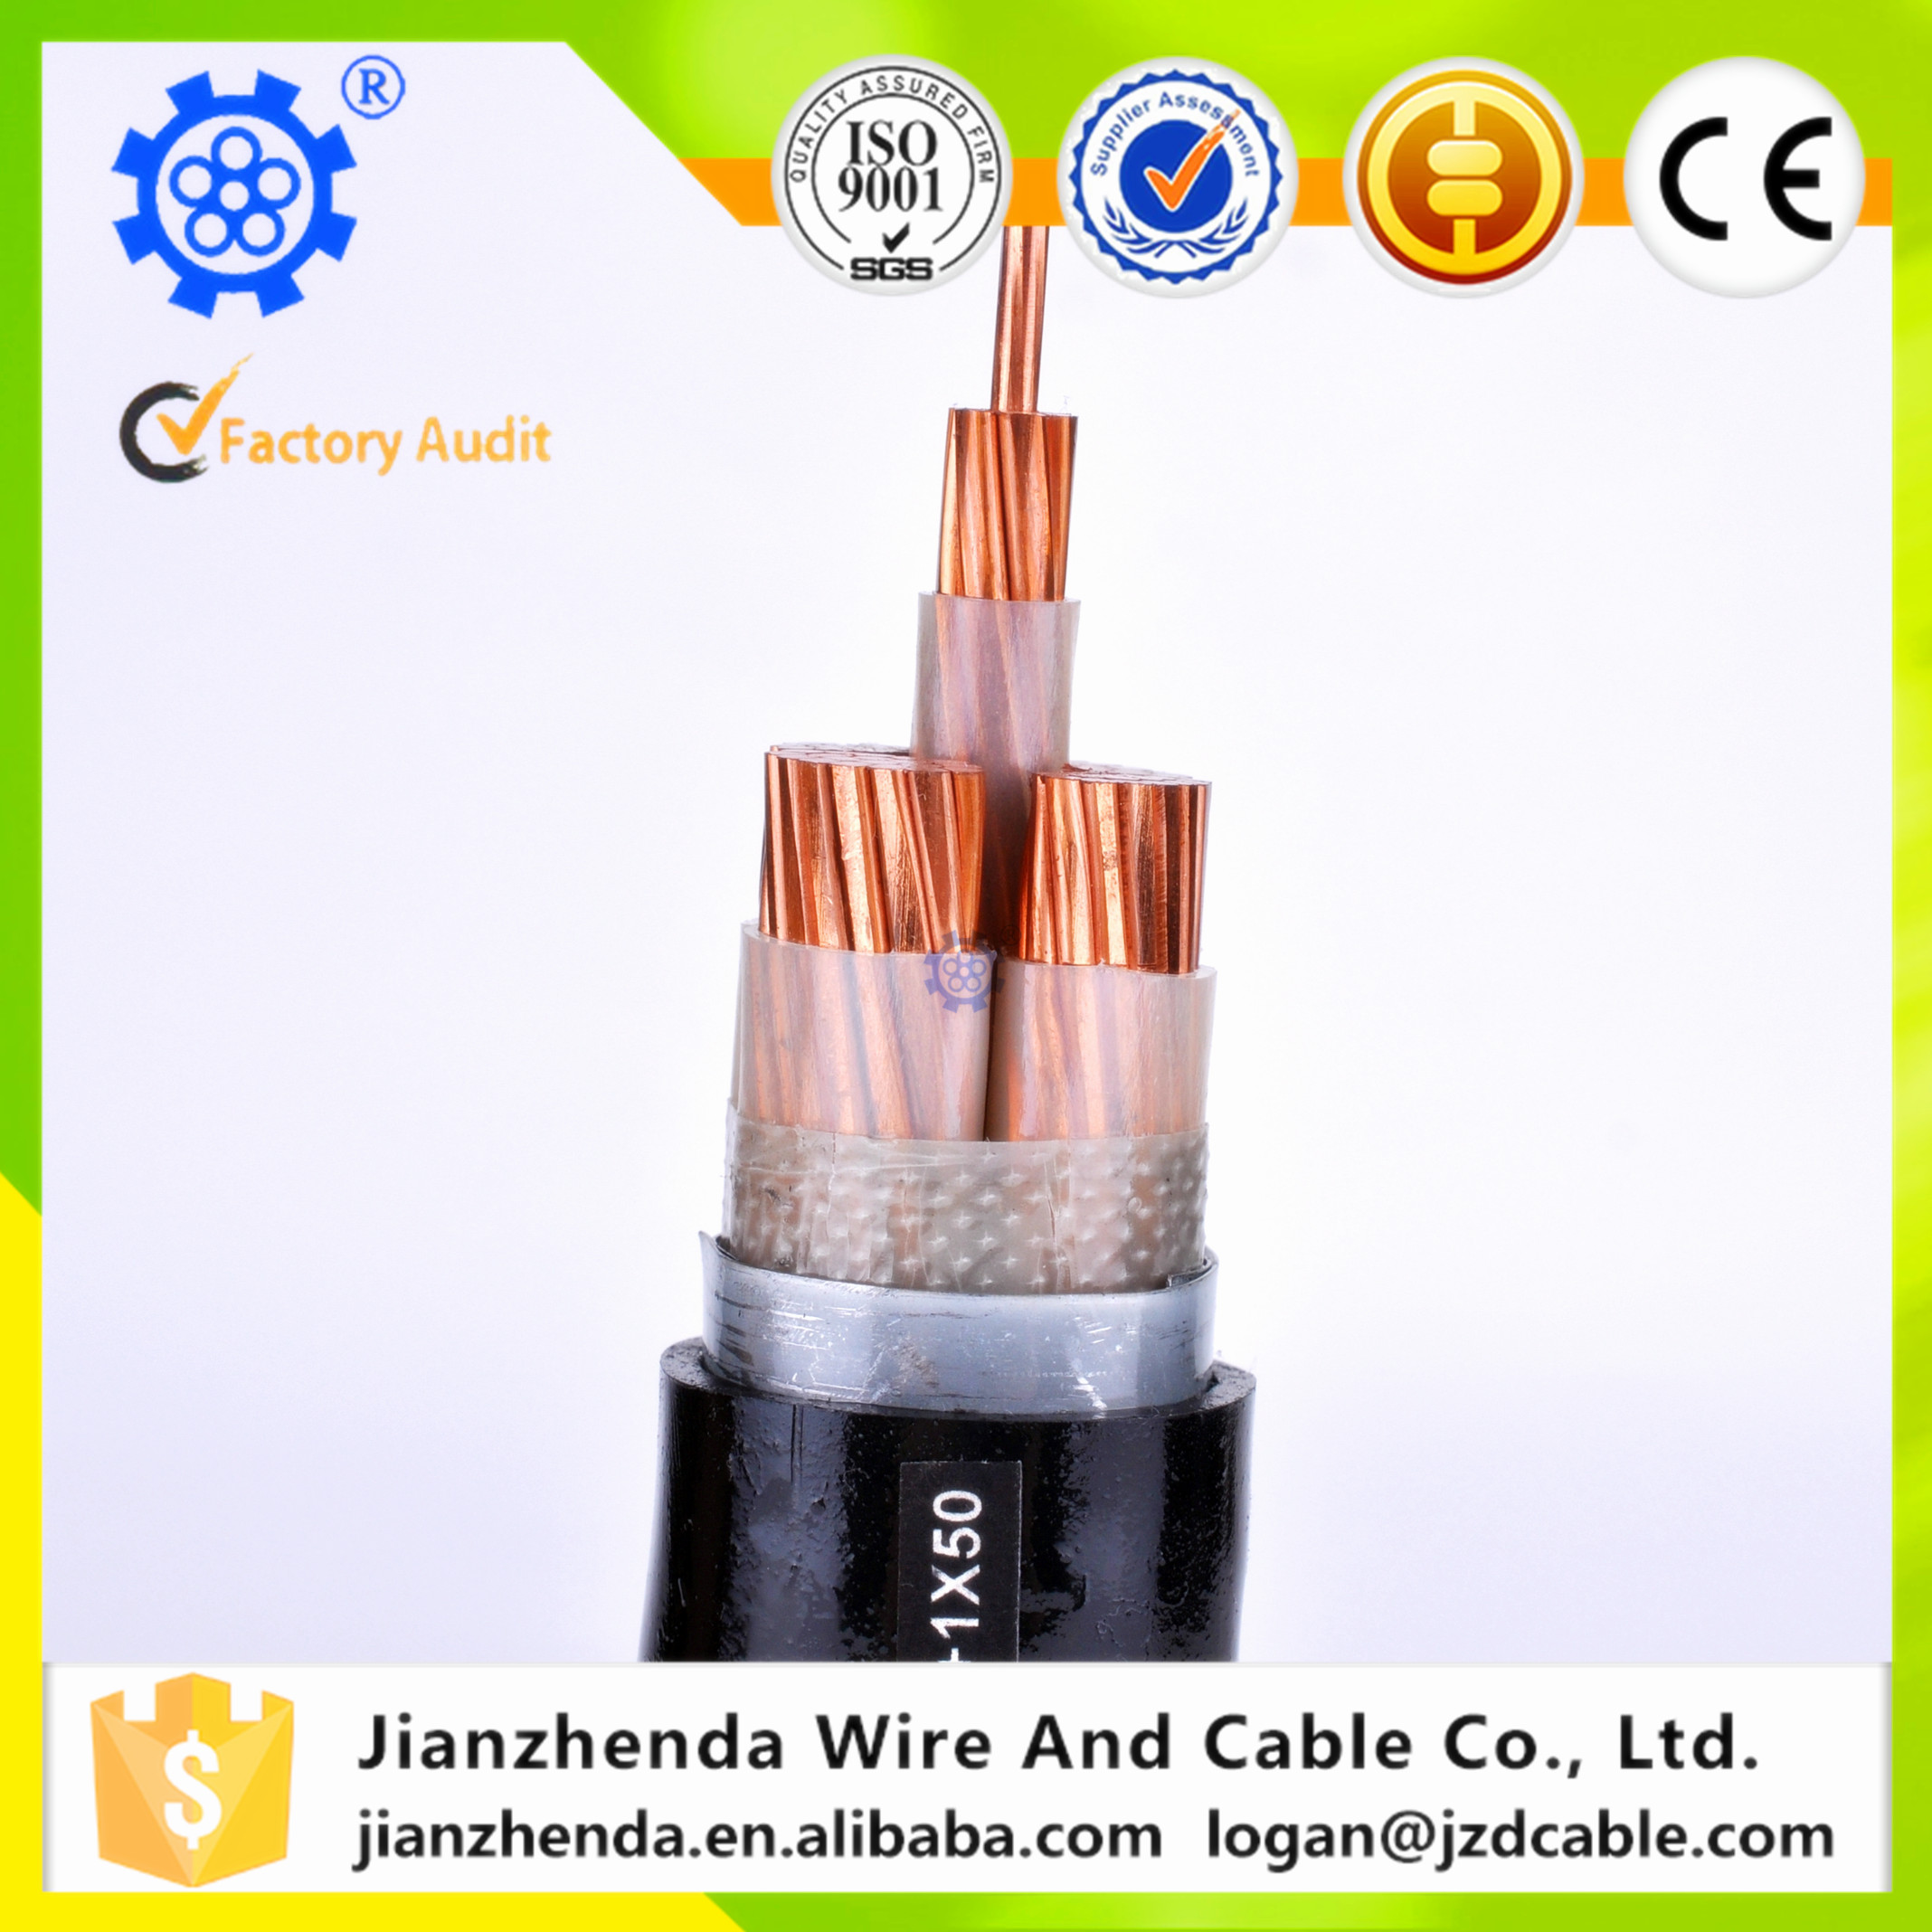 Cable buy electric cable 2 5 sq mm cable 1 5 sqmm wire product on - 6 Sq Mm Cable 6 Sq Mm Cable Suppliers And Manufacturers At Alibaba Com